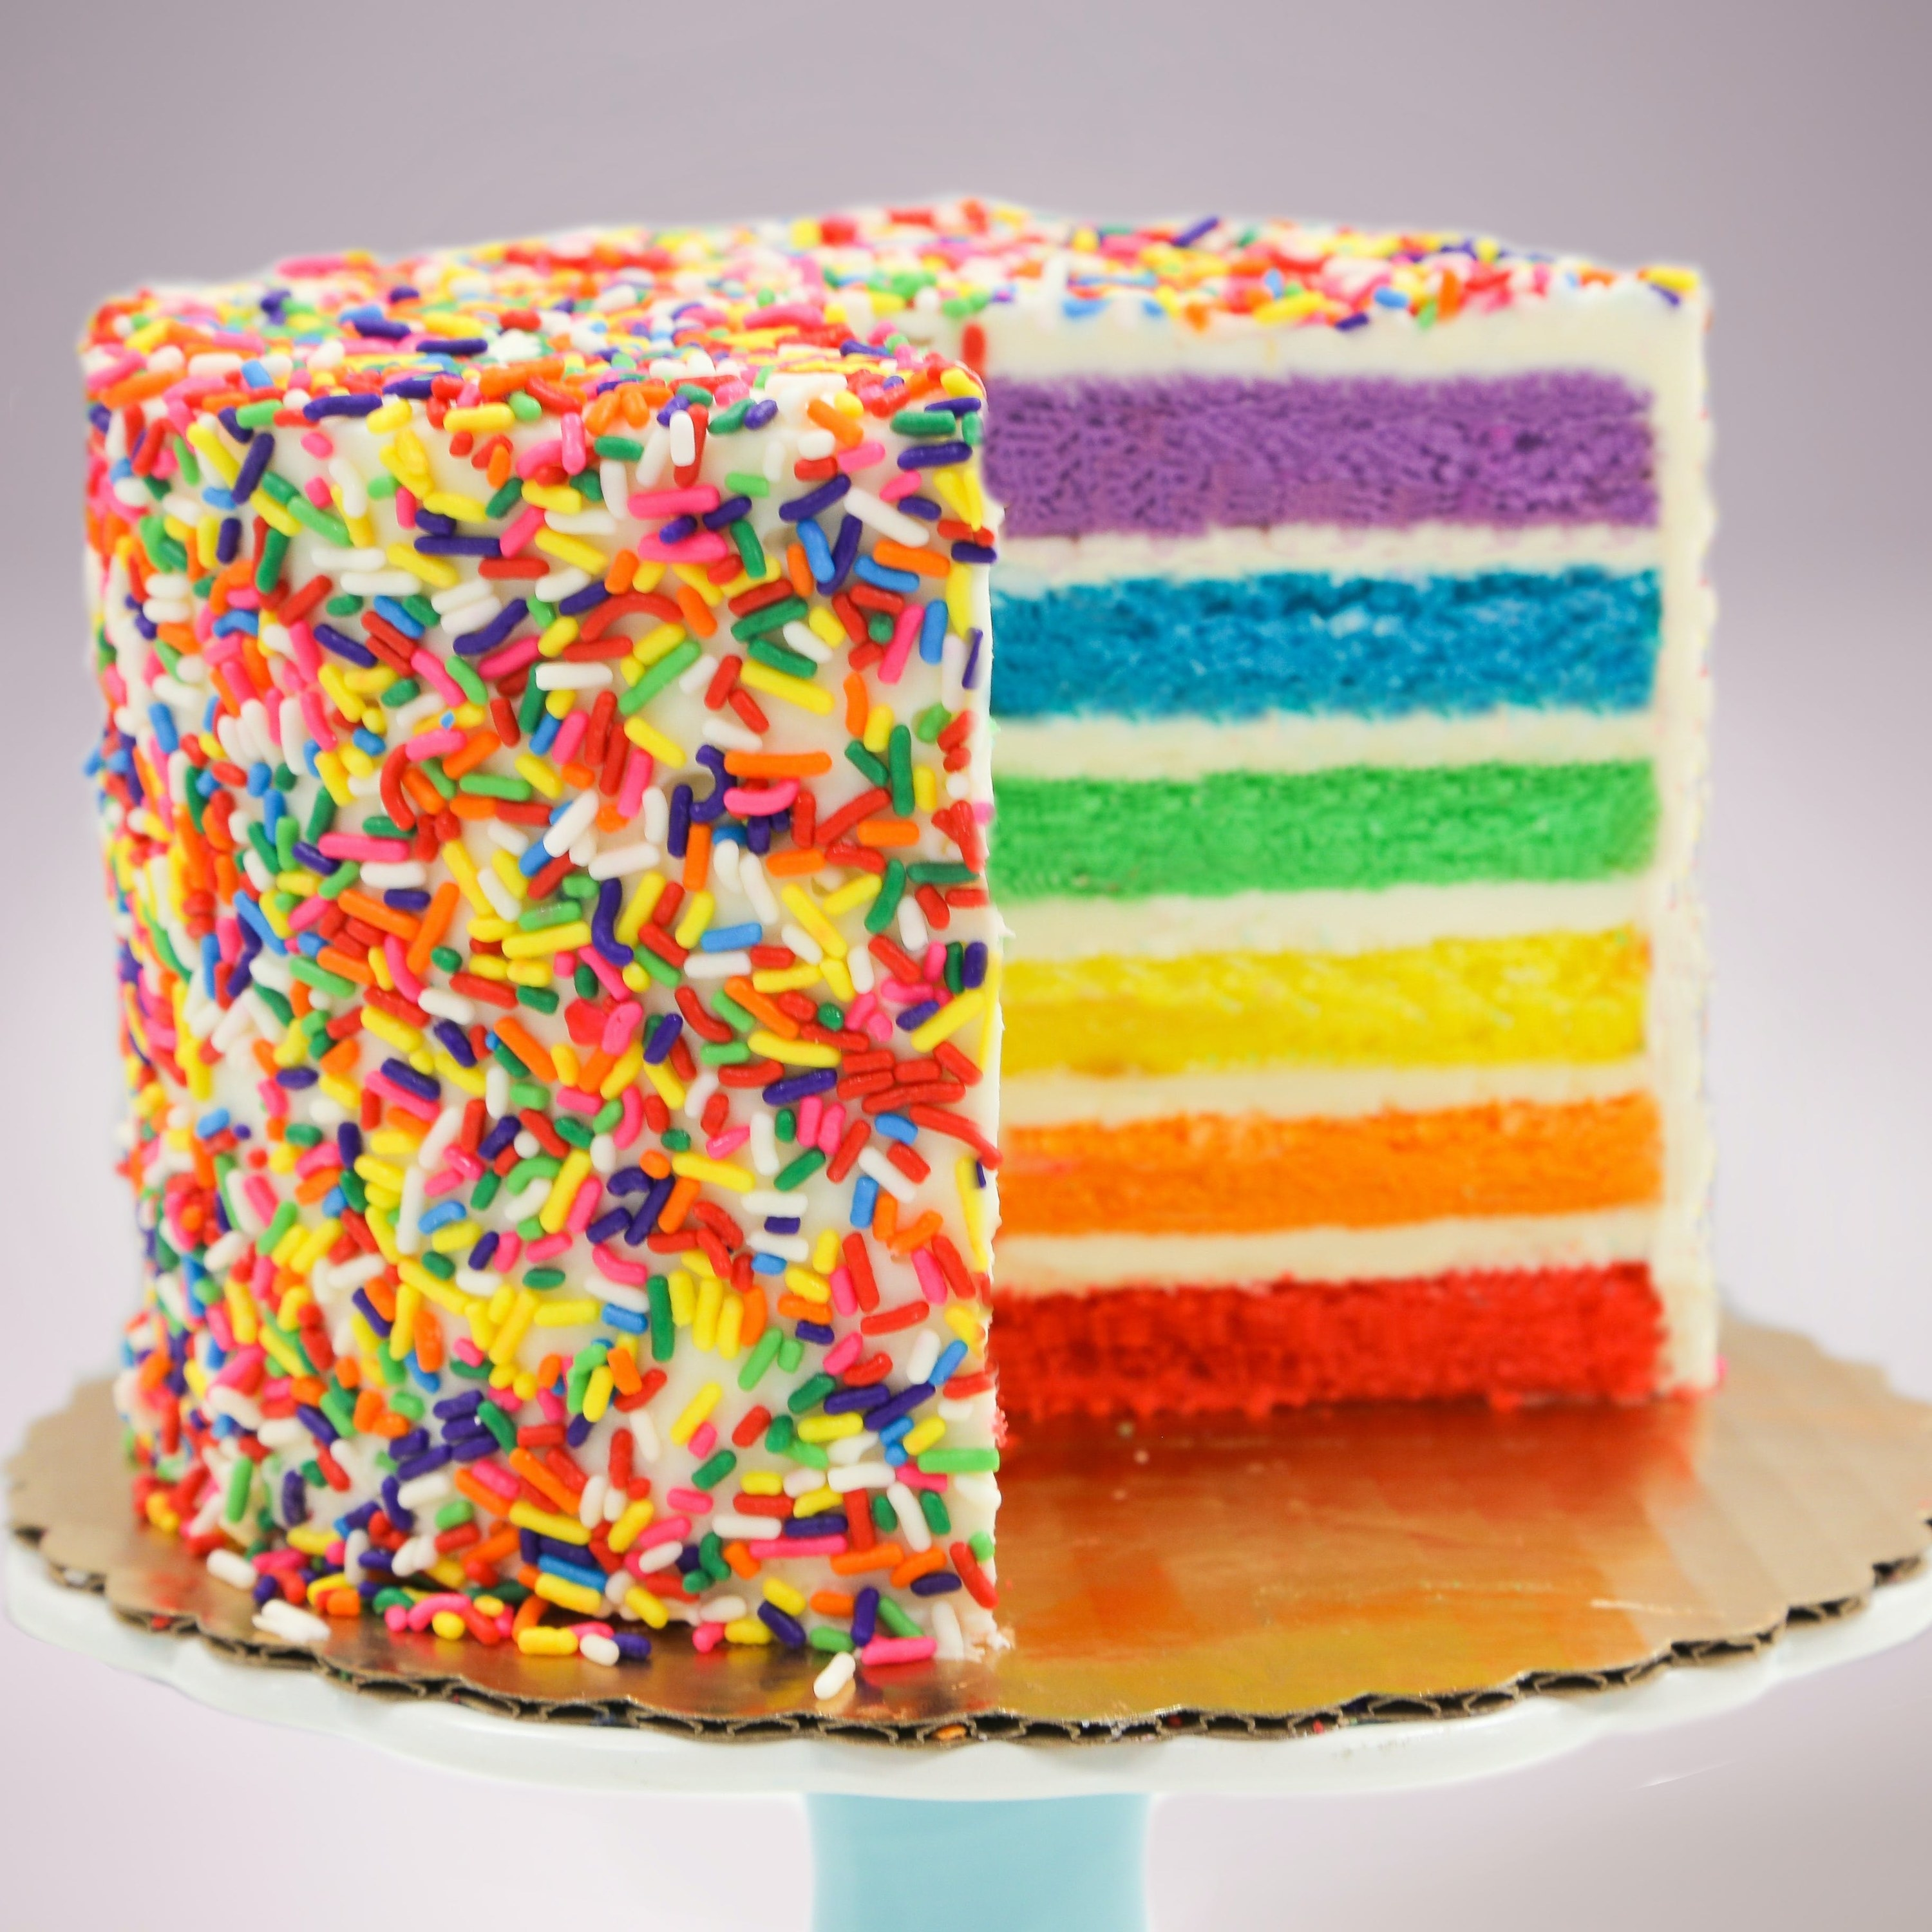 the cake with rainbow sprinkles